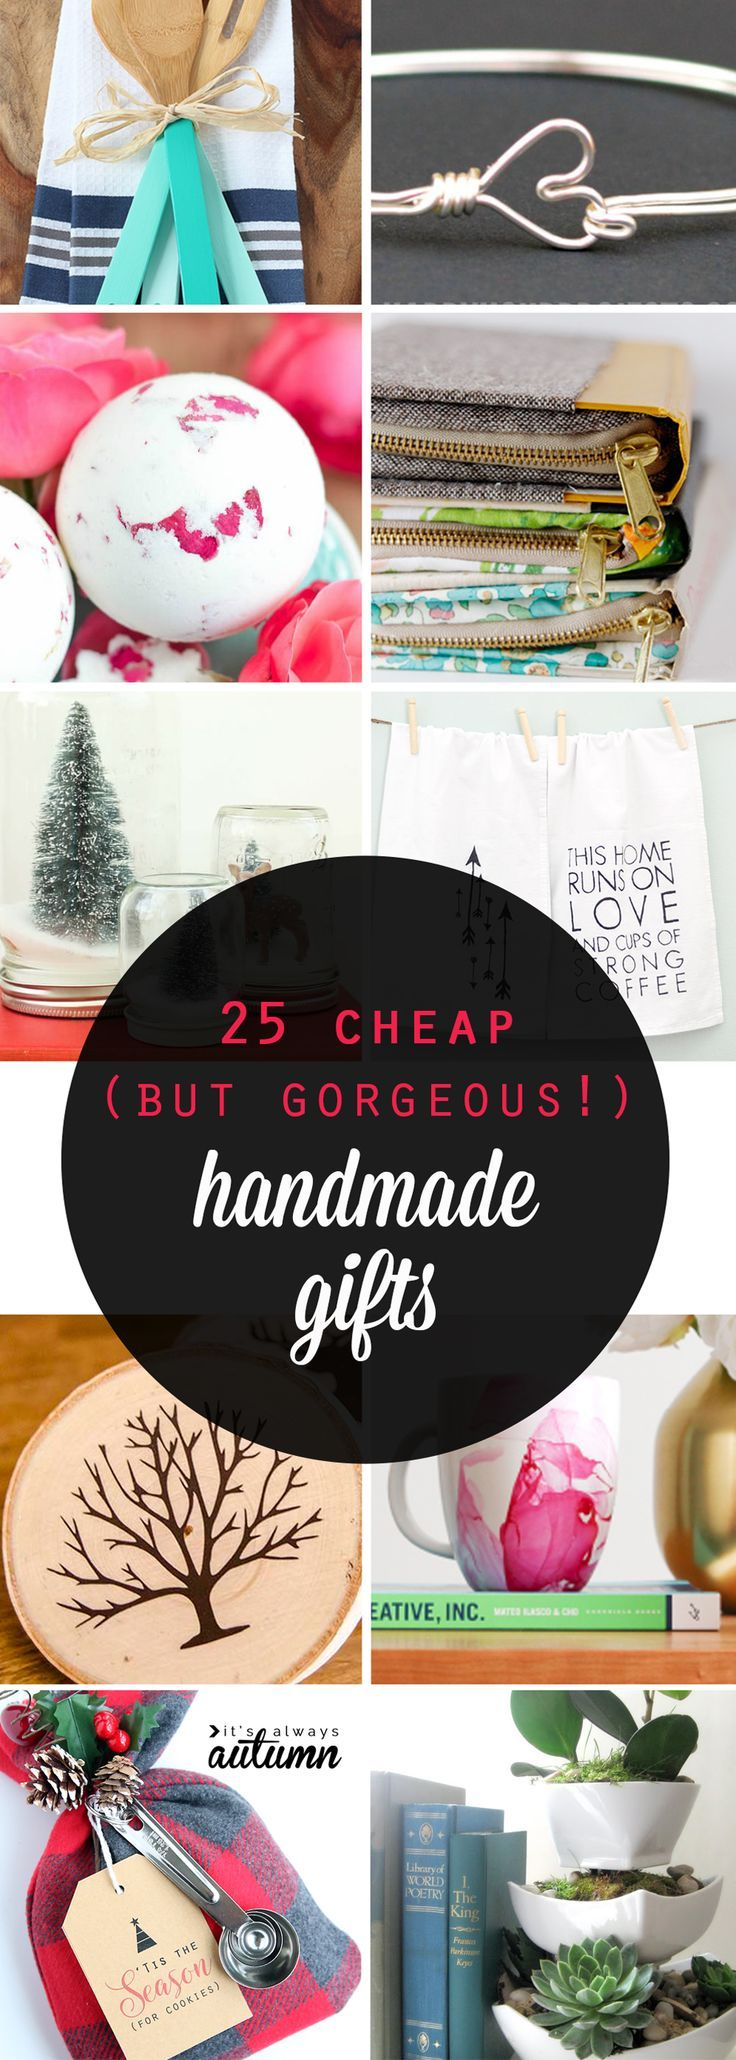 25 Cheap But Gorgeous Diy Gifts It S Always Autumn Diy Holiday Gifts Diy Gifts Cheap Diy Christmas Gifts